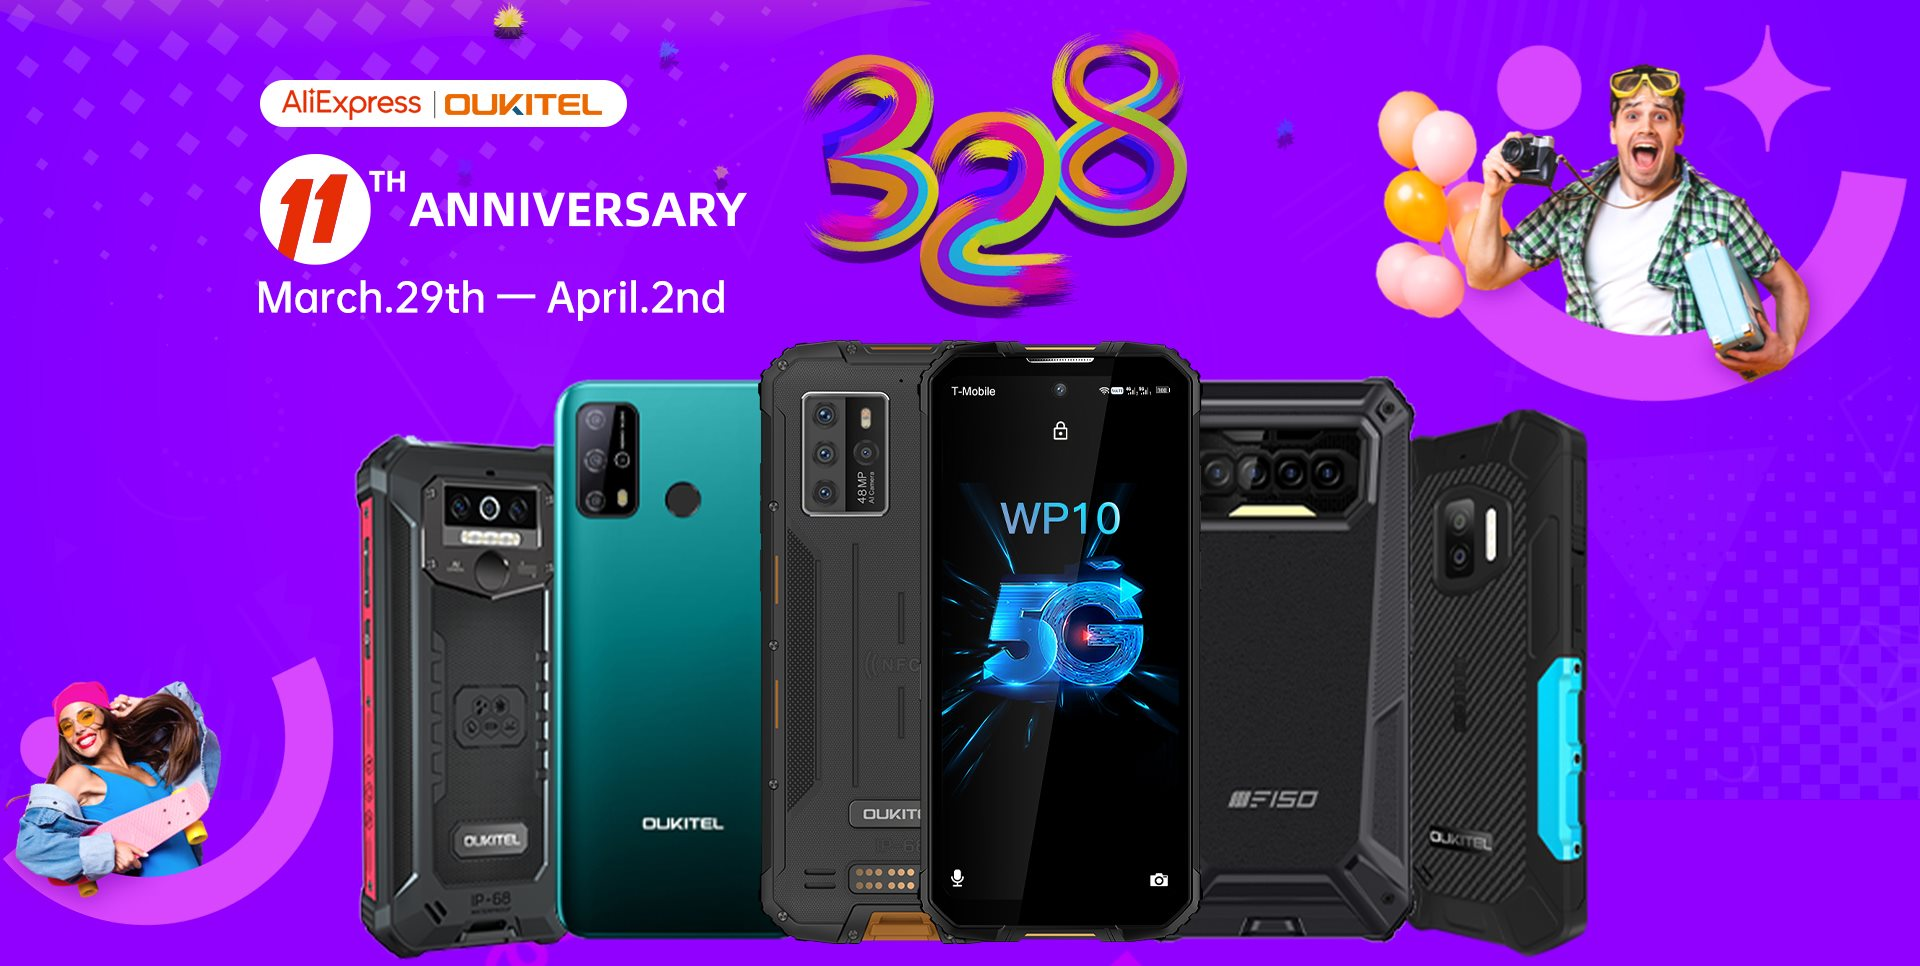 Looking for best deals🤔 Than head to our official store and avail the best ever deals on #Oukitel phones🎉🎉